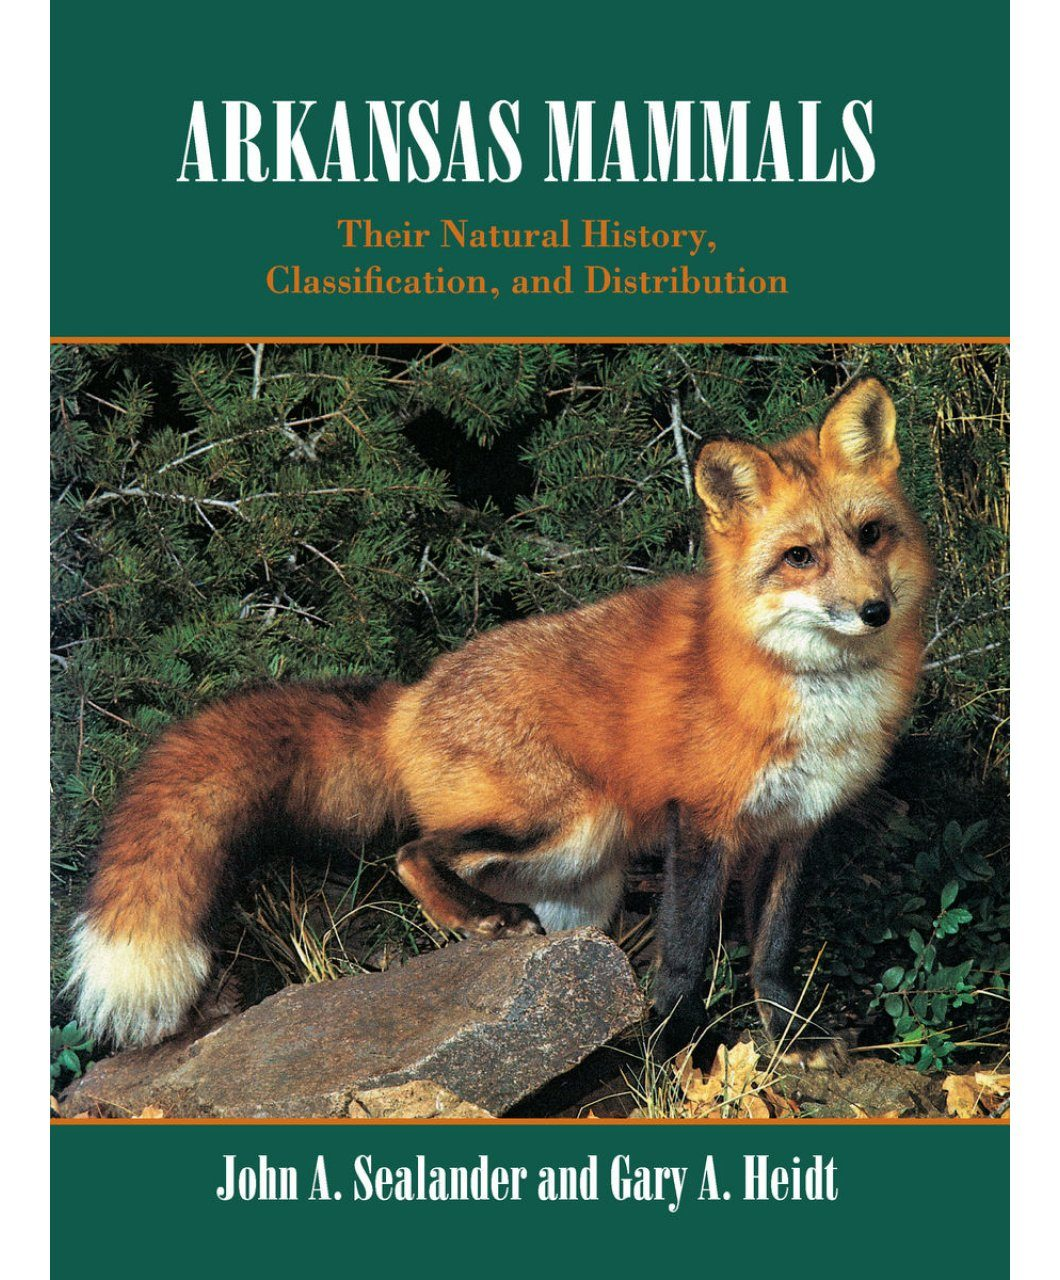 Arkansas Mammals